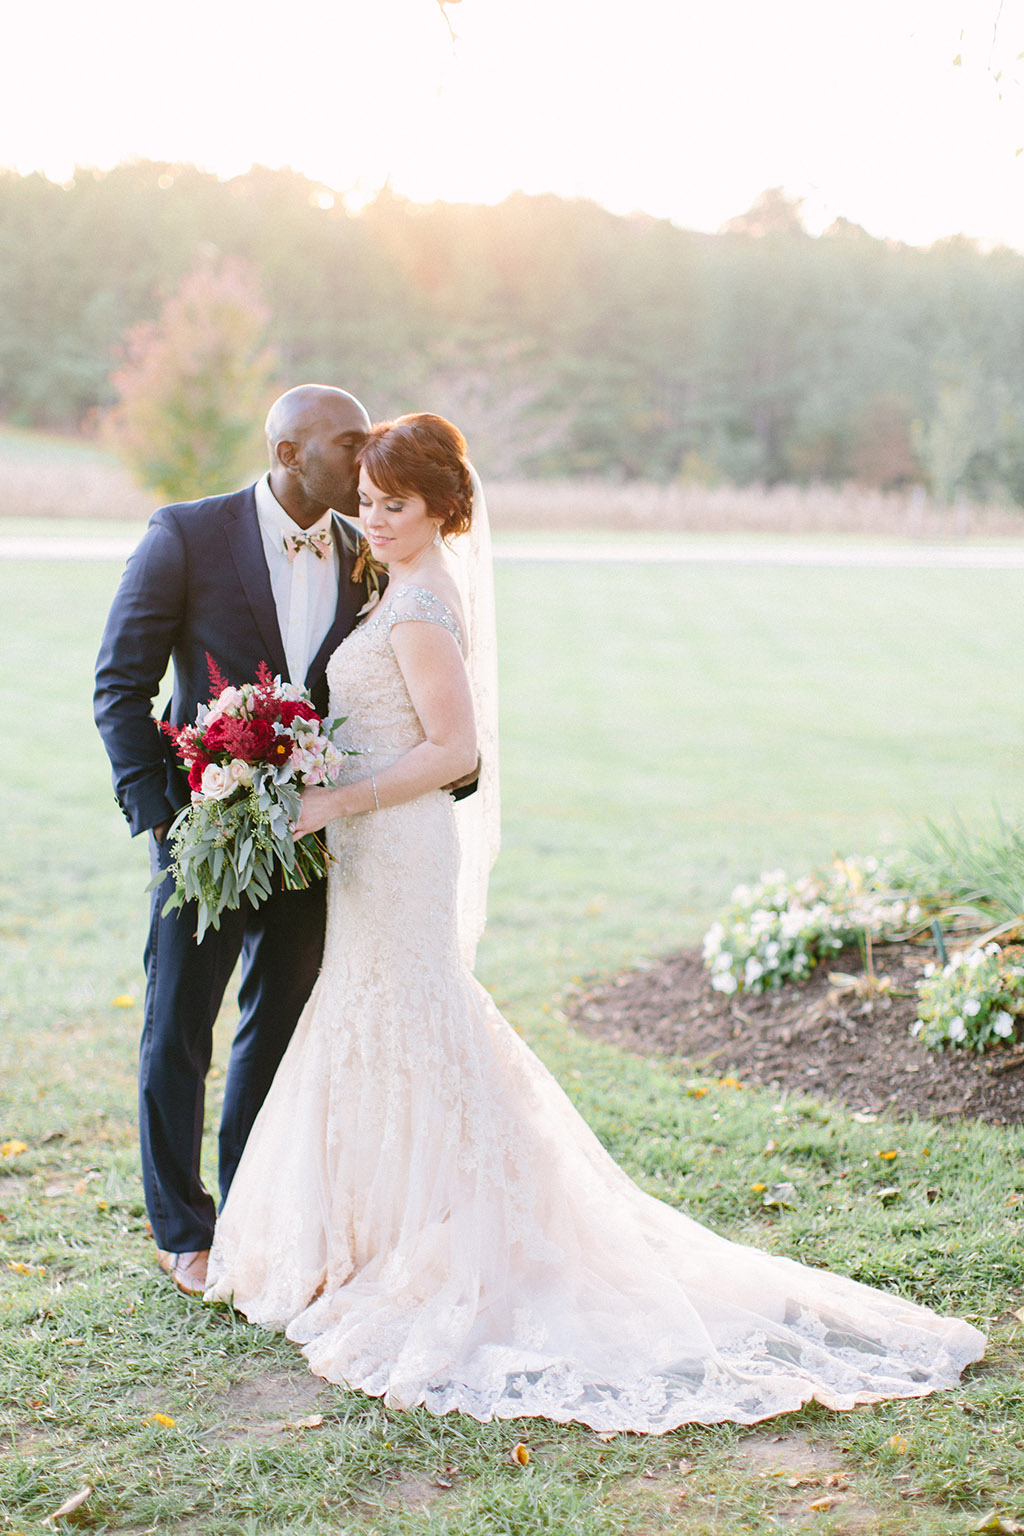 White Wedding Dress With Red Roses 81 Epic Jessica held a free